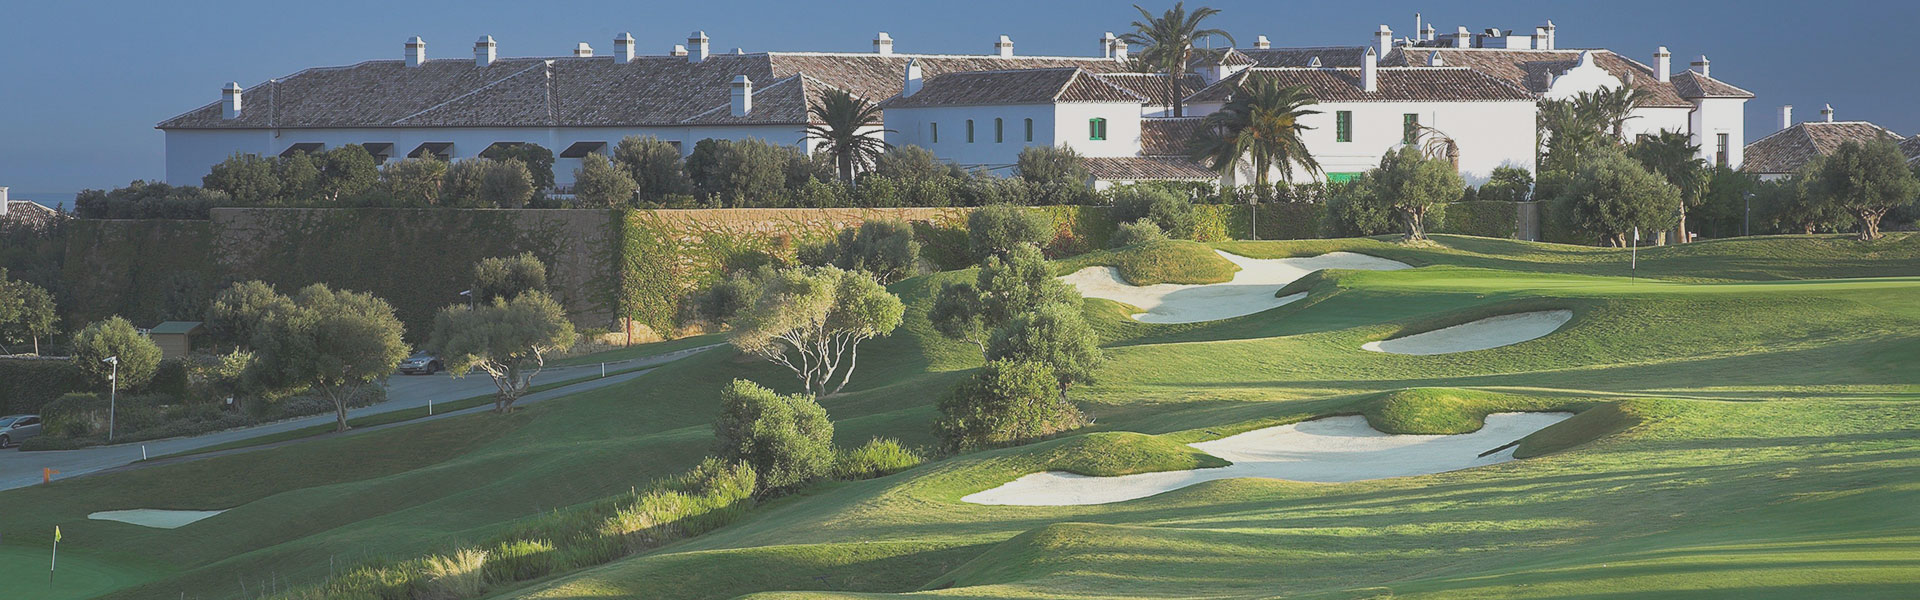 Golf-Expedition-Golf-reizen-Spanje-Regio-Malaga-Finca-Cortesin-Hotel-Golf-Spa-resort-overview-grijs